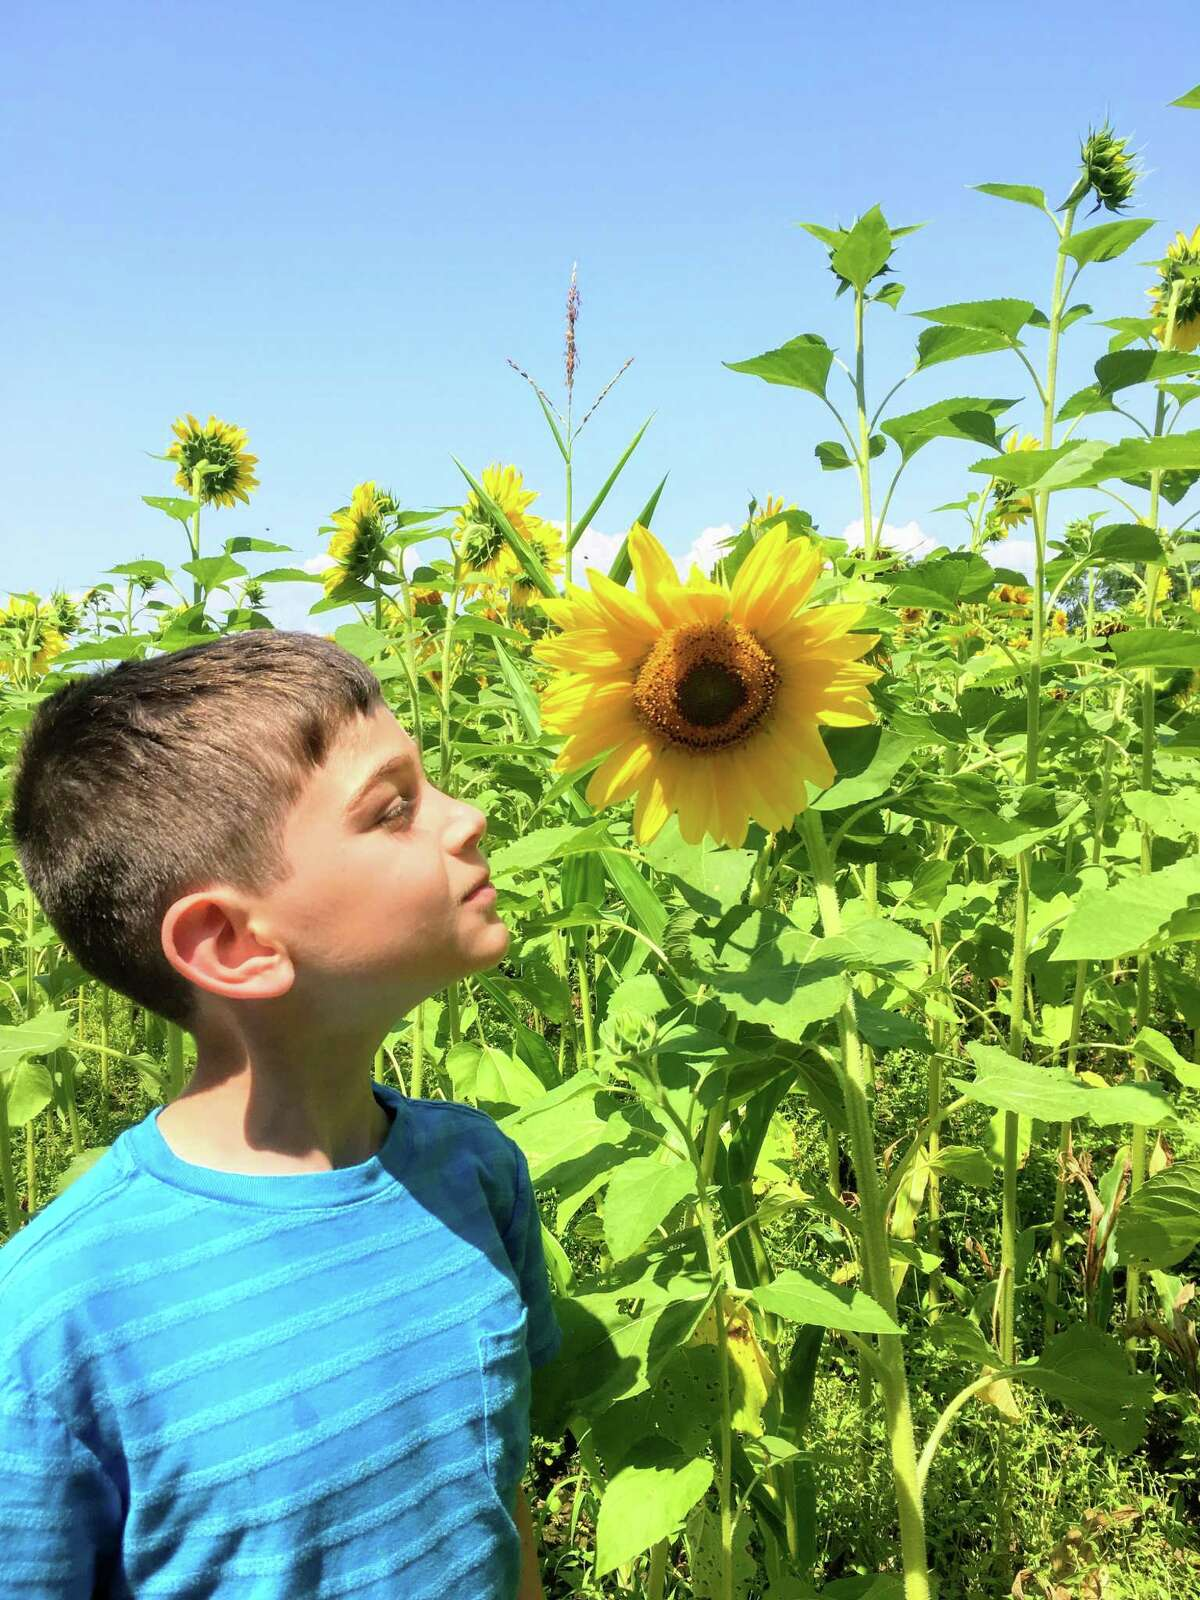 Eli Weiner of Wethersfield admires a bloom at Buttonwood Farms in Griswold in 2019. Helianthus is the proper name of this category of large flowers with the daisy-like face. Fun fact: Except for a few species in South America, all Helianthus species are native to North America and Central America (but also popular in Germany).